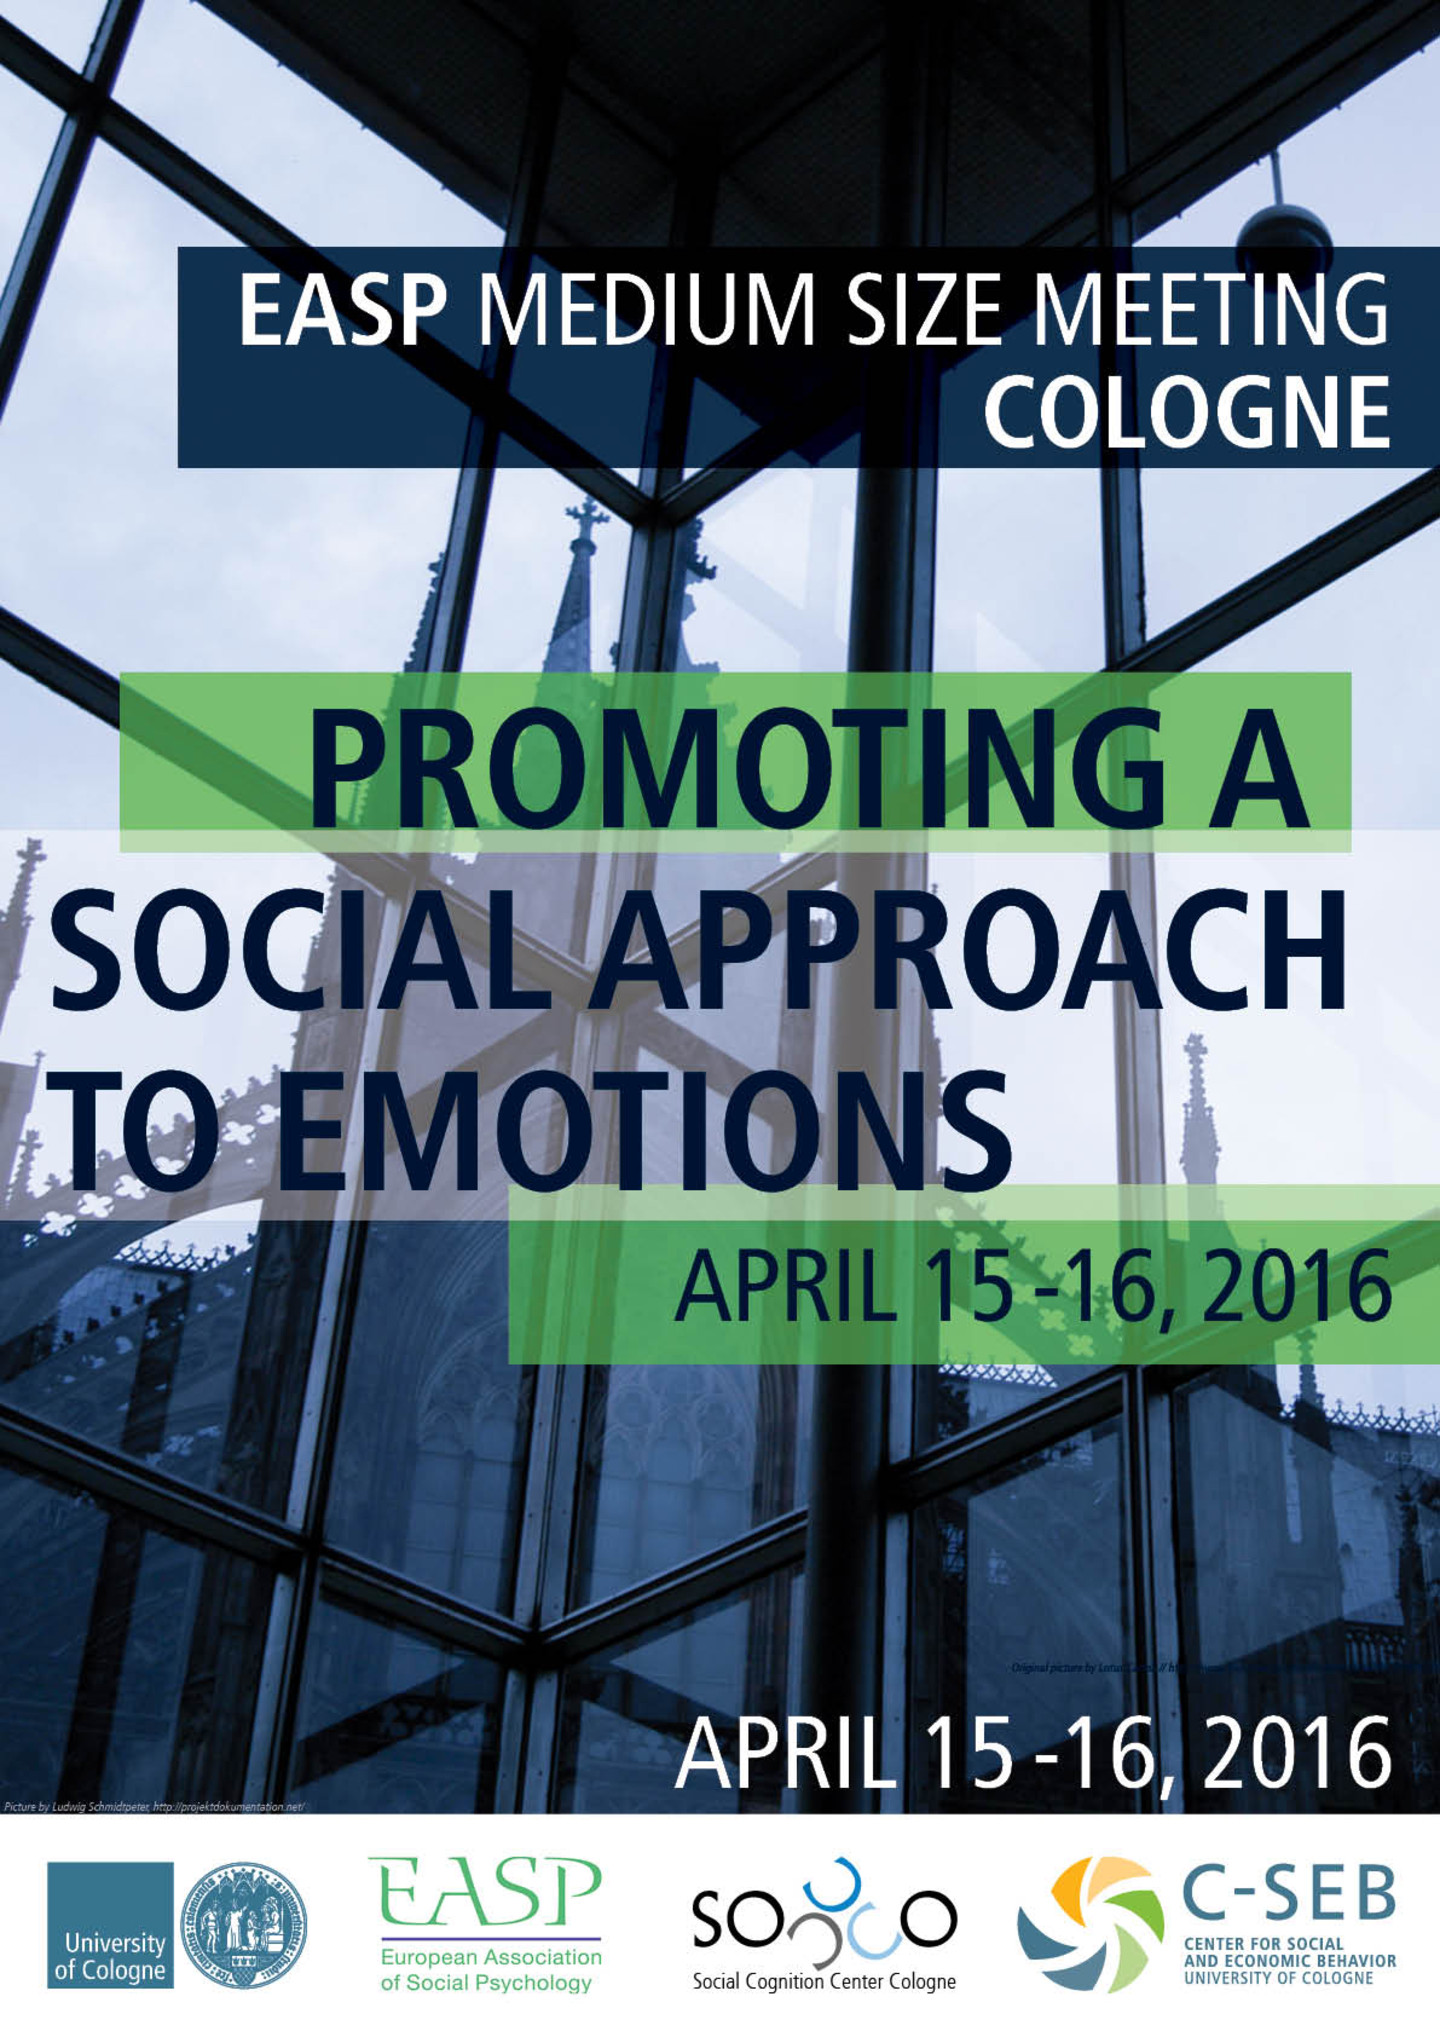 Promoting a Social Approach to Emotions